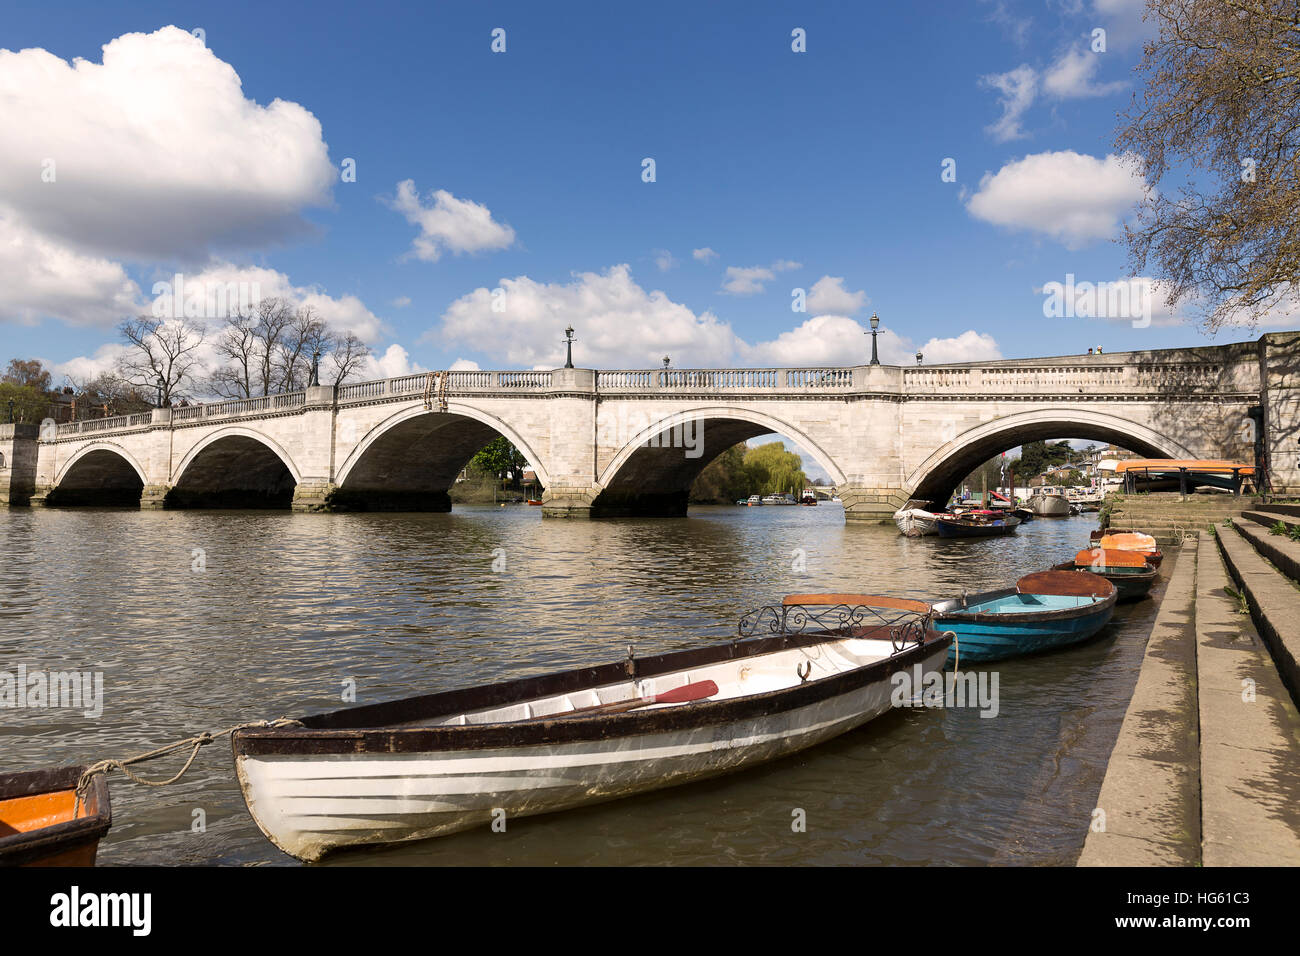 Richmond upon thames and bridge over the river stock photo richmond upon thames and bridge over the river nvjuhfo Choice Image